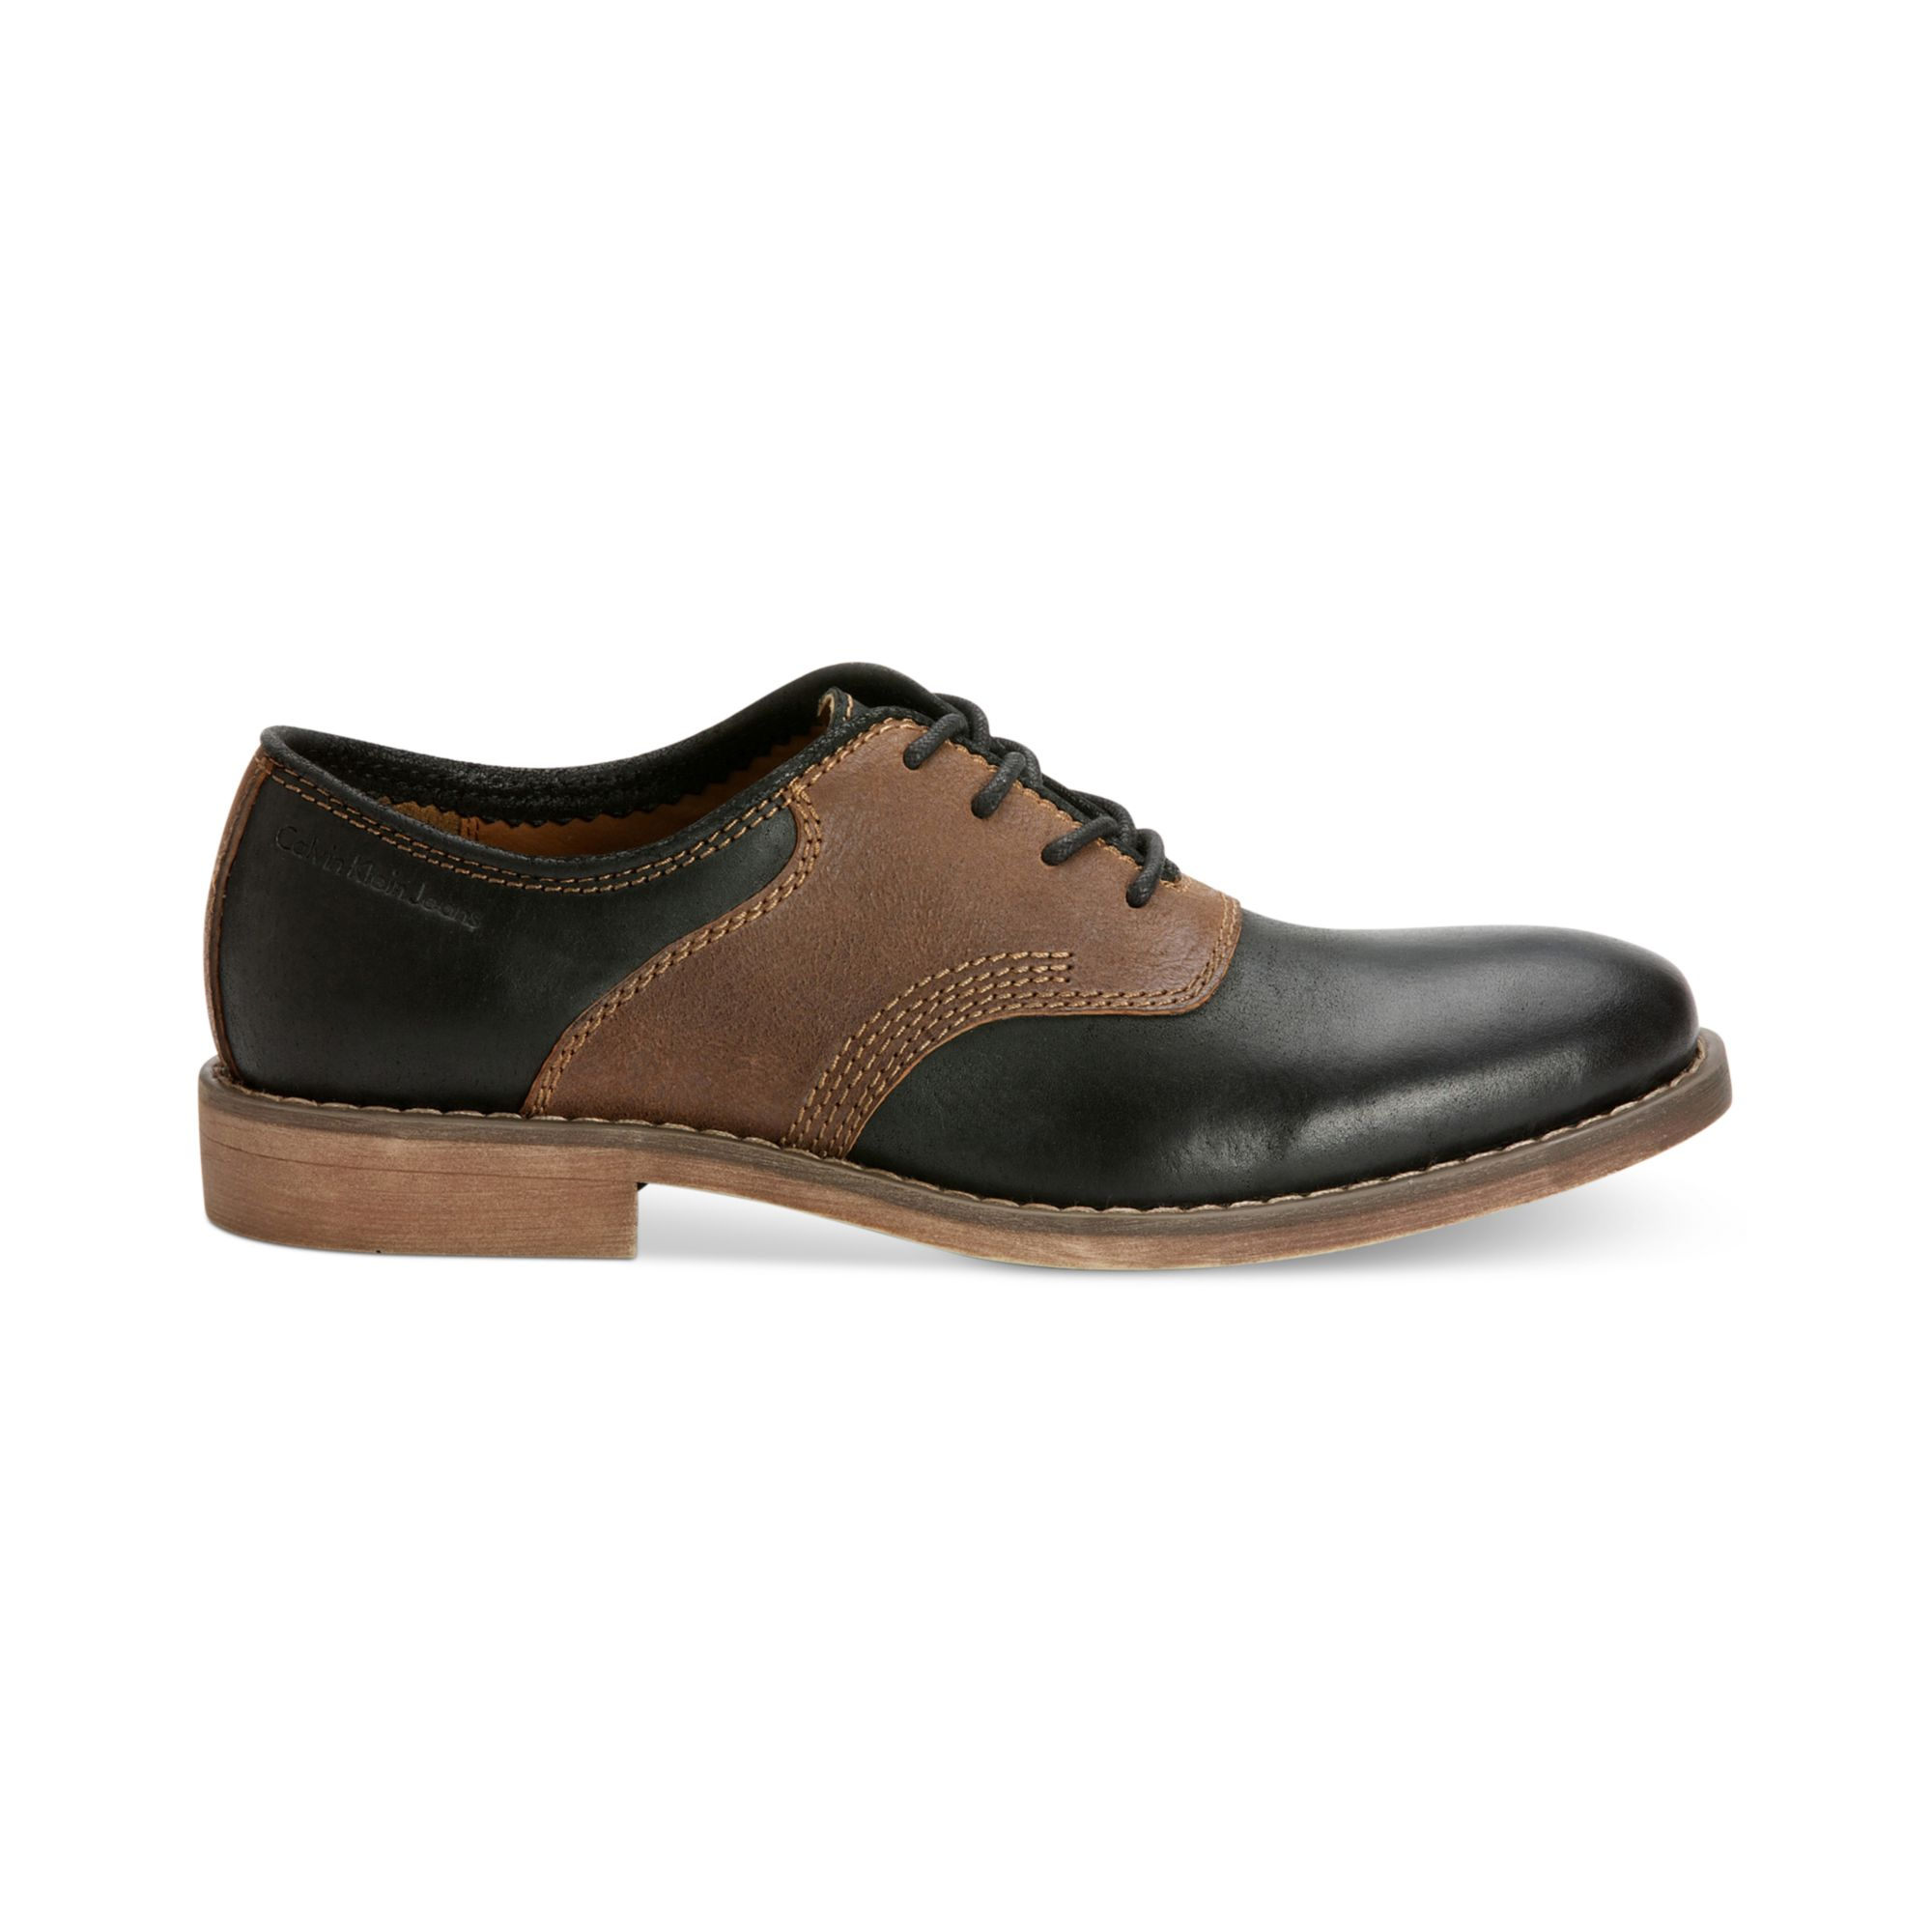 calvin klein jeans oris saddle shoes in brown for men lyst. Black Bedroom Furniture Sets. Home Design Ideas